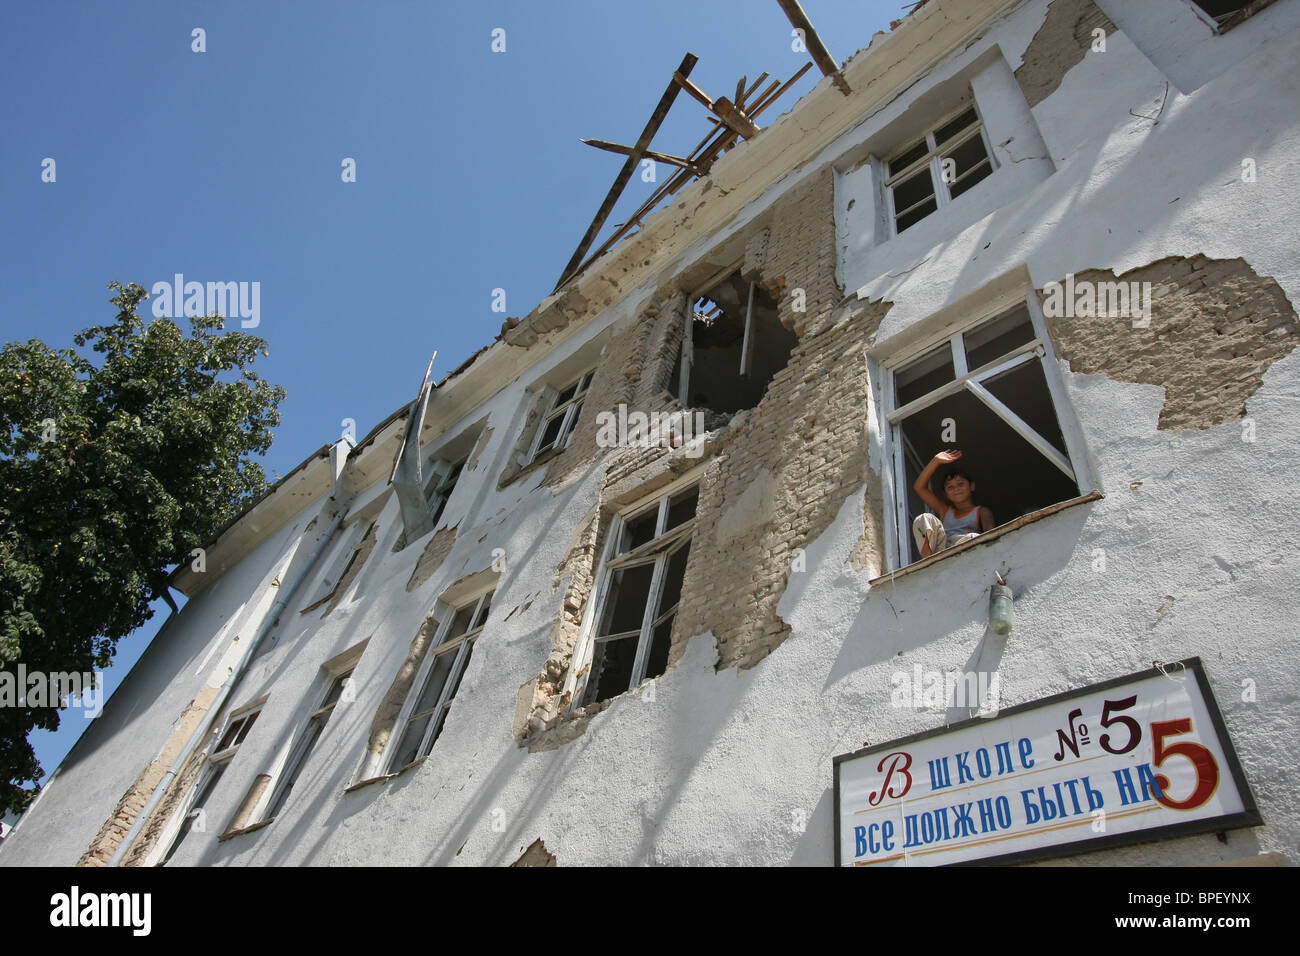 Tskhinvali schools under restoration as new academic year approaches - Stock Image